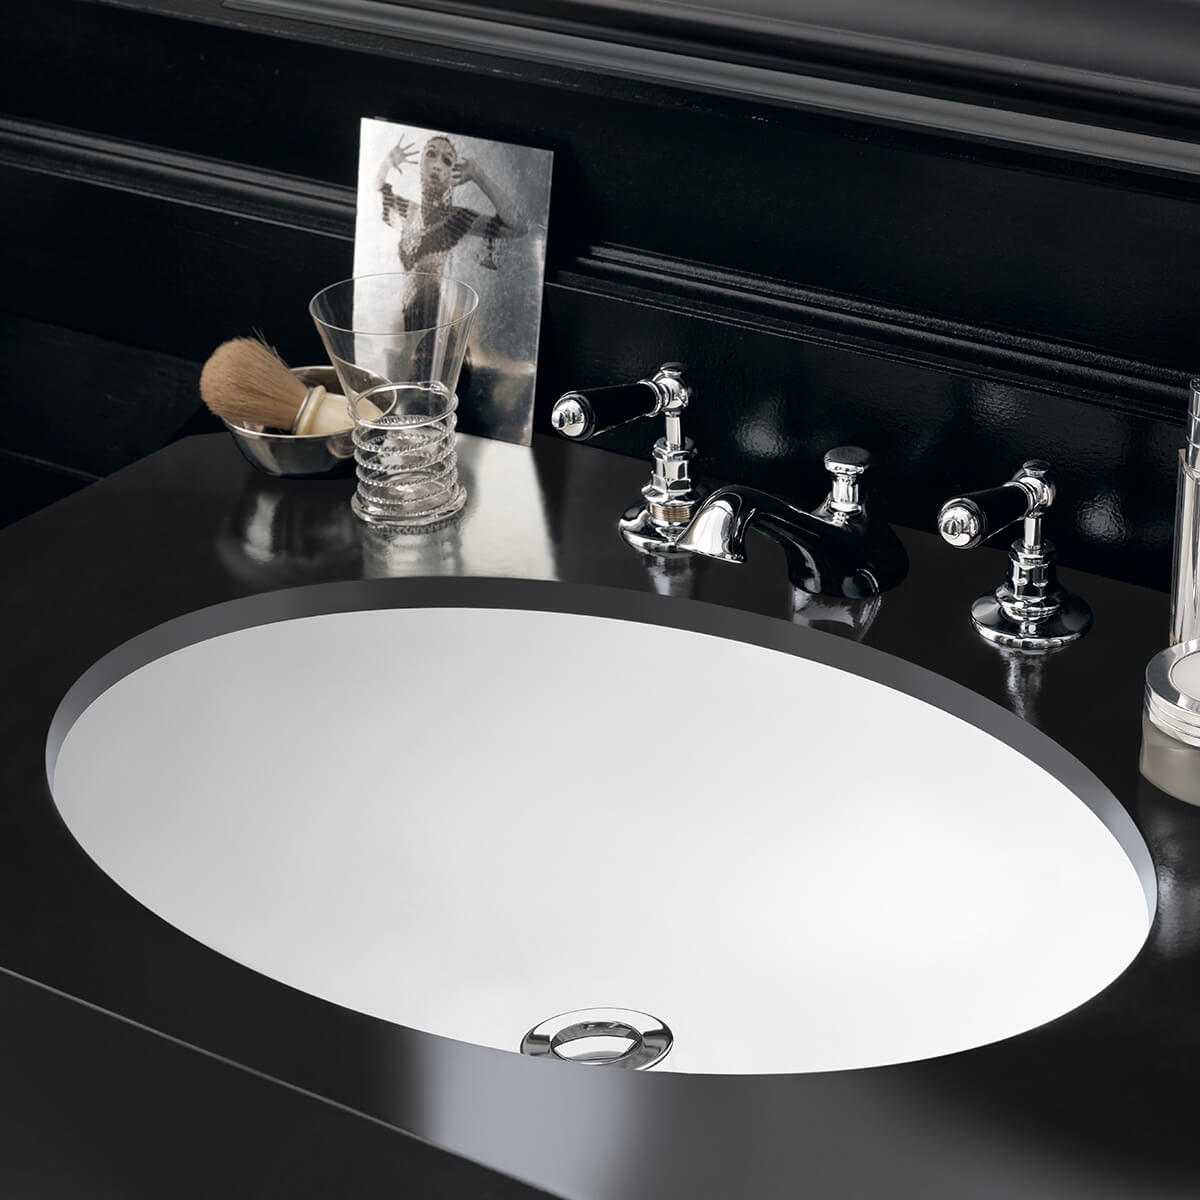 CASF corian basin smooth 8310 bathroom